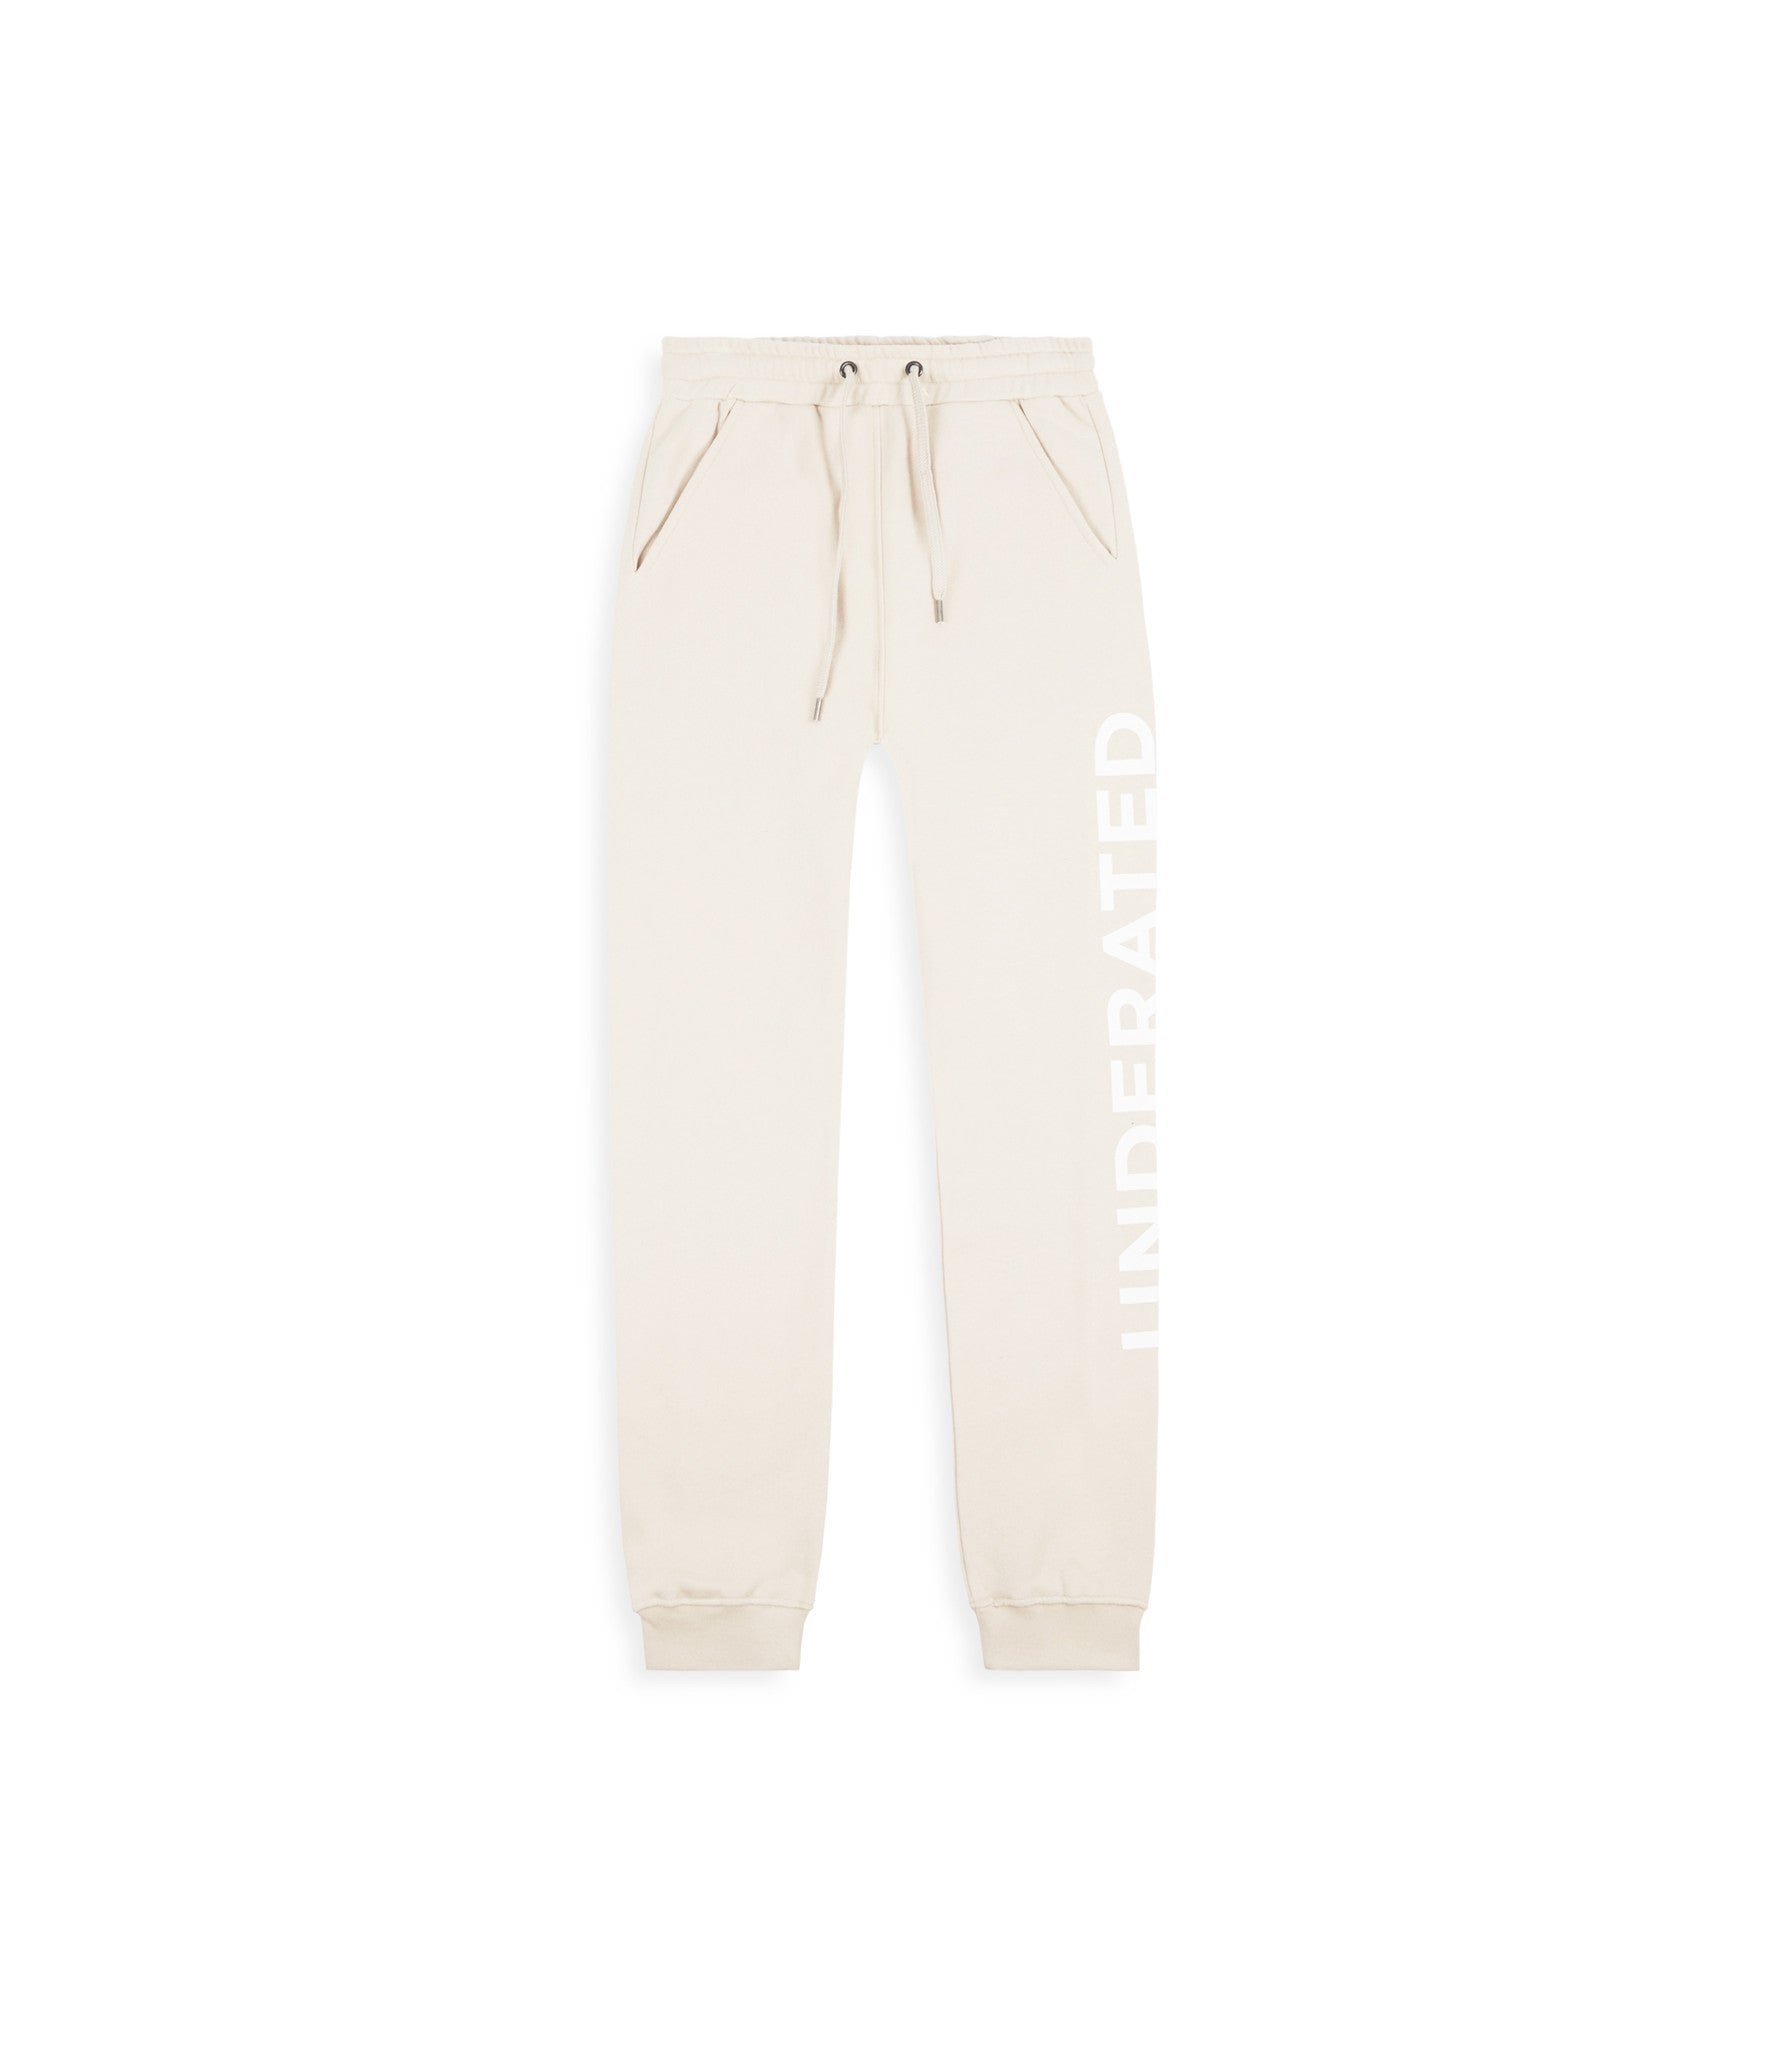 TR351 Essential Printed Joggers - Beige - underated london - underatedco - 1